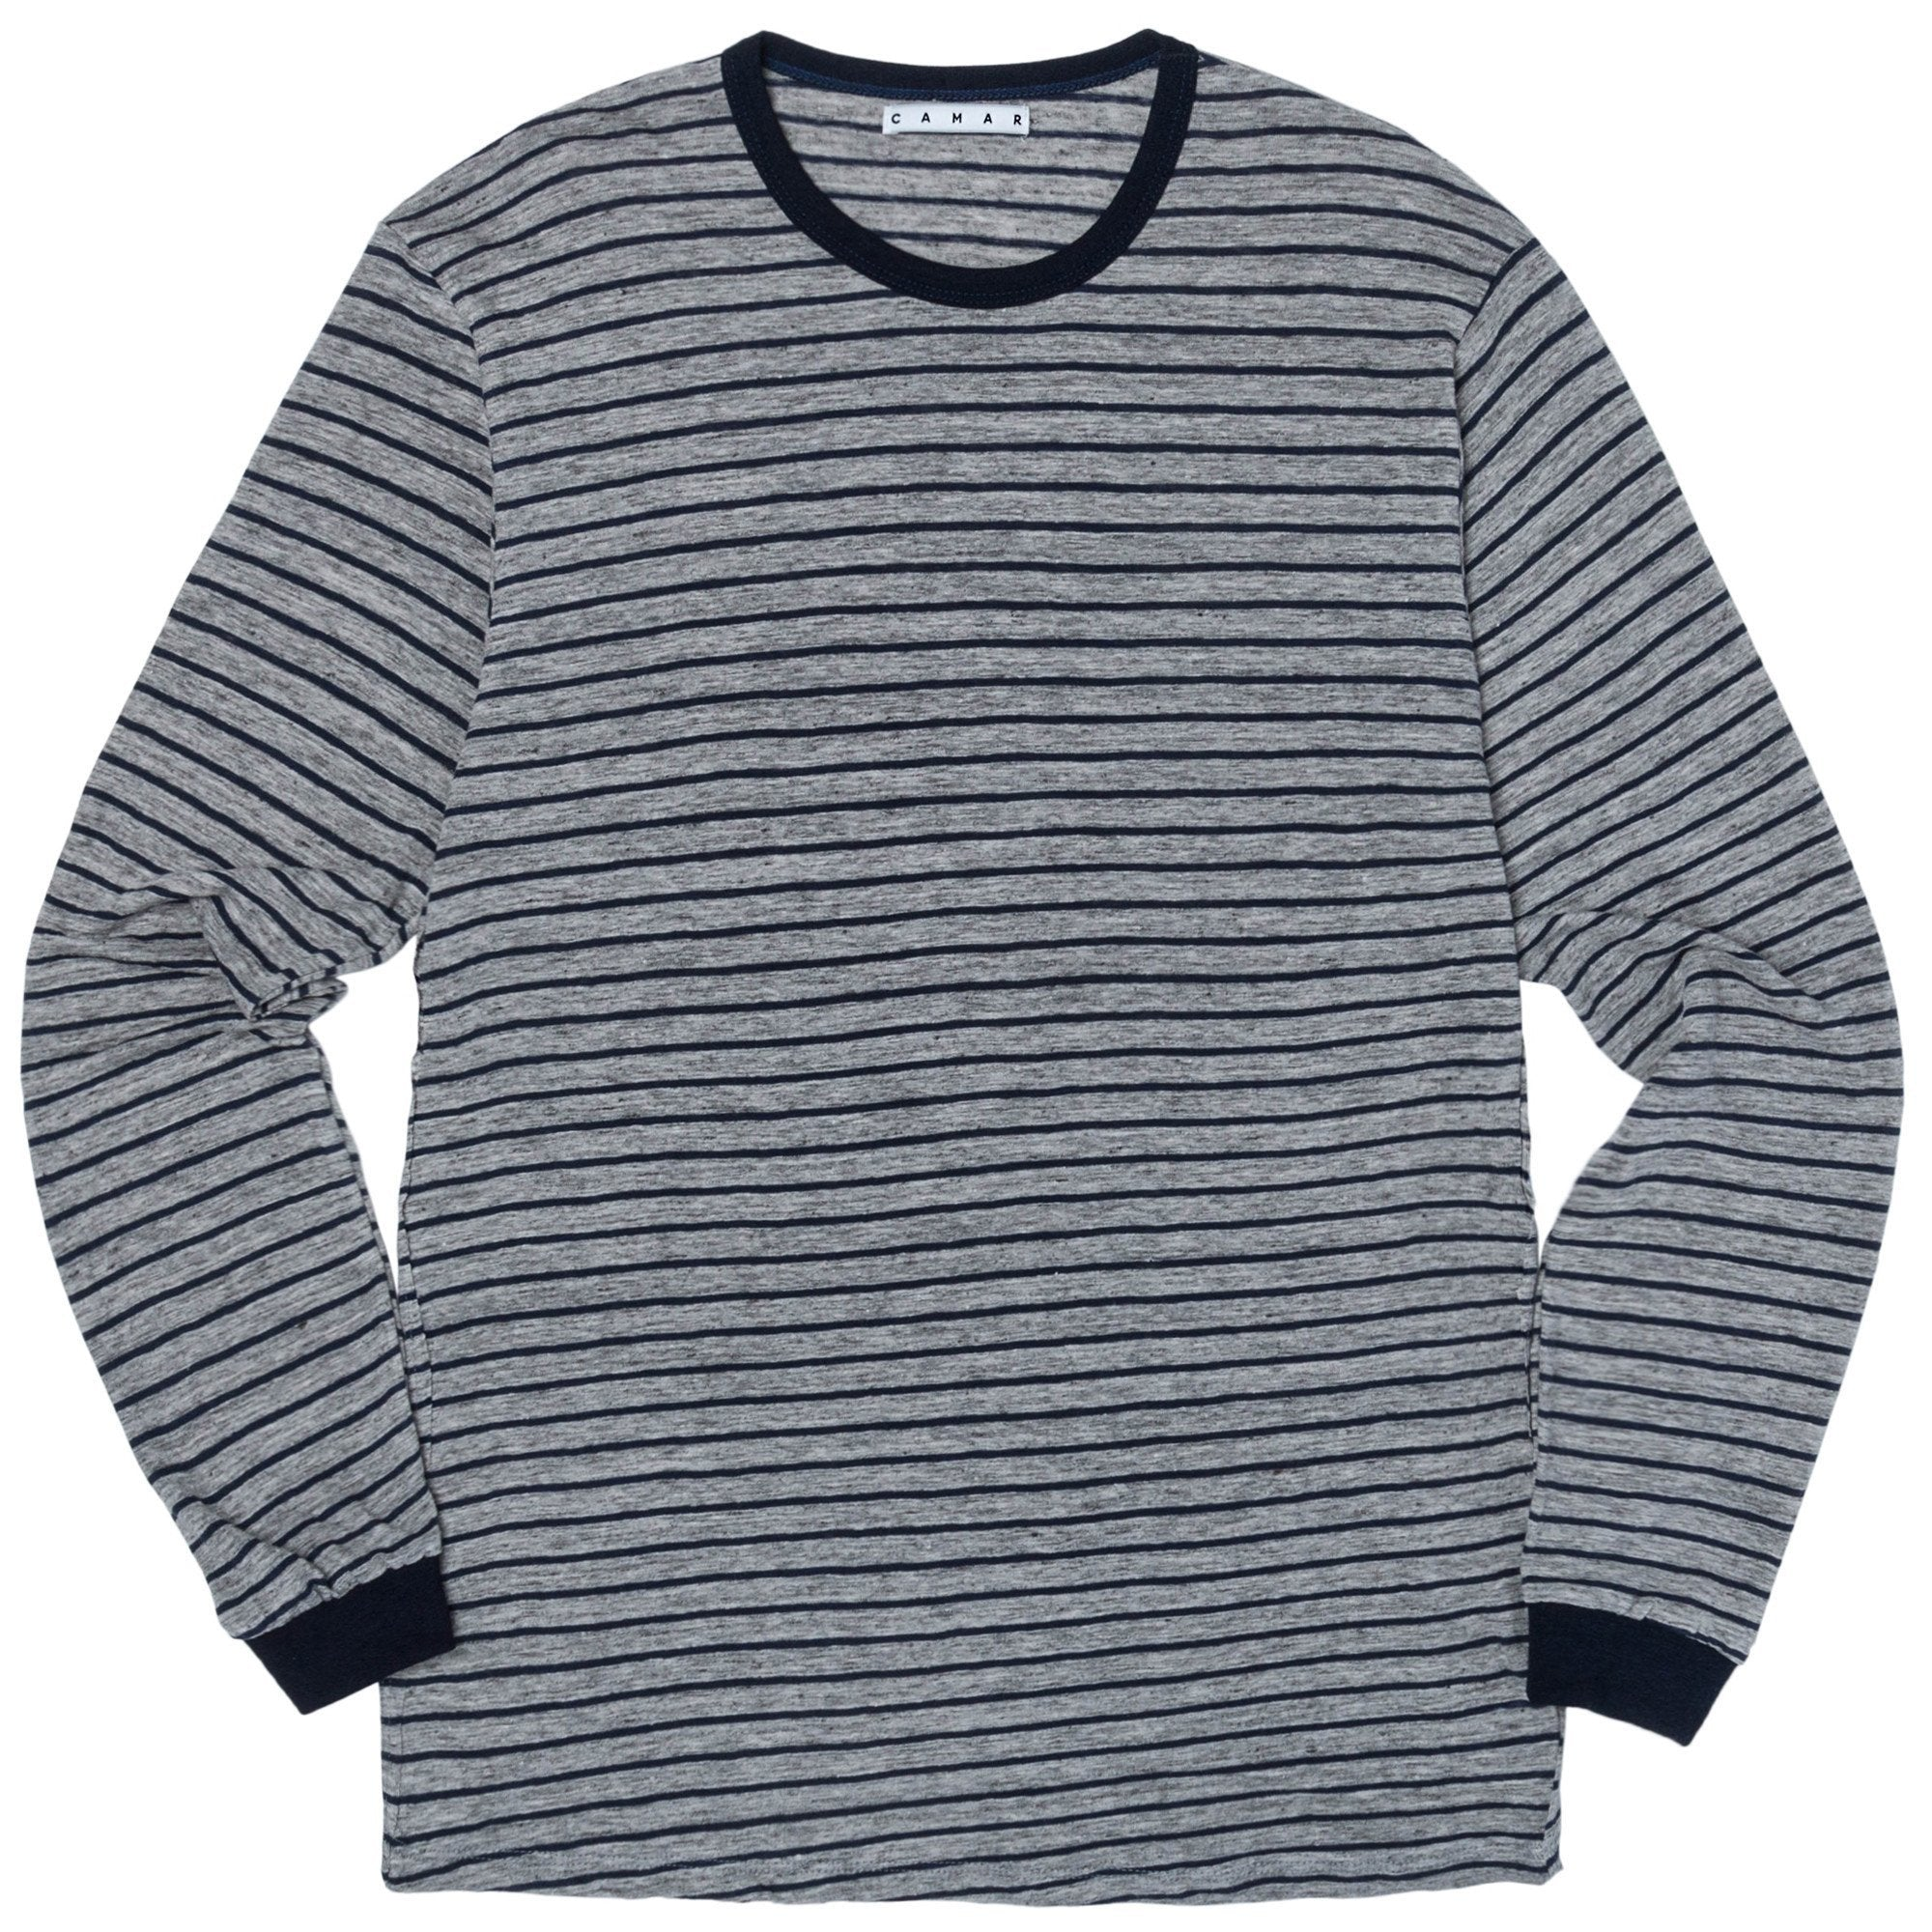 Long Sleeve Blue Stripe Shirt (Heather/Navy)